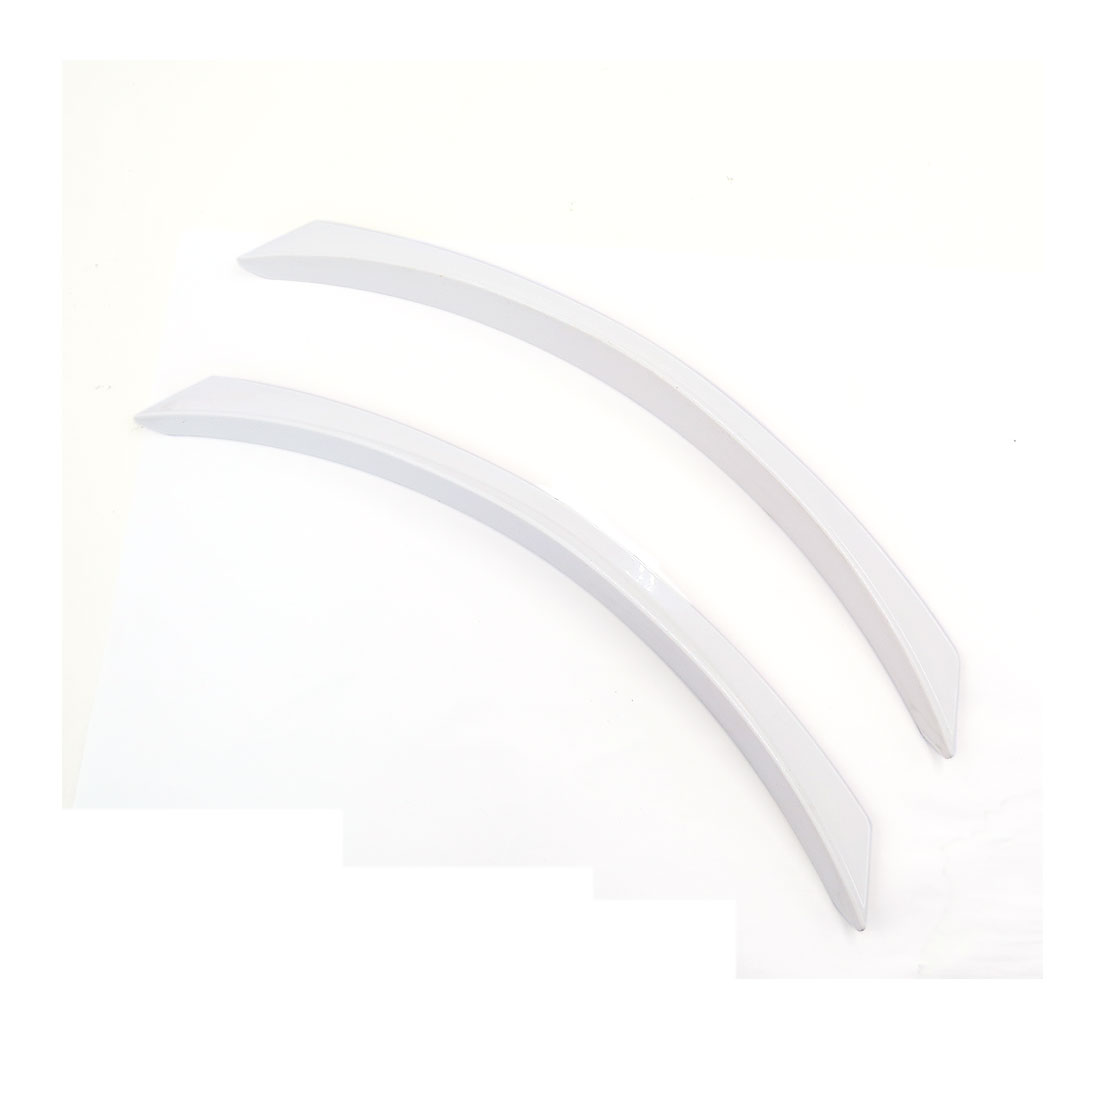 2 Pcs White Plastic Car Front Rear Bumper Anti-rub Protector Guard 36.5cm Long